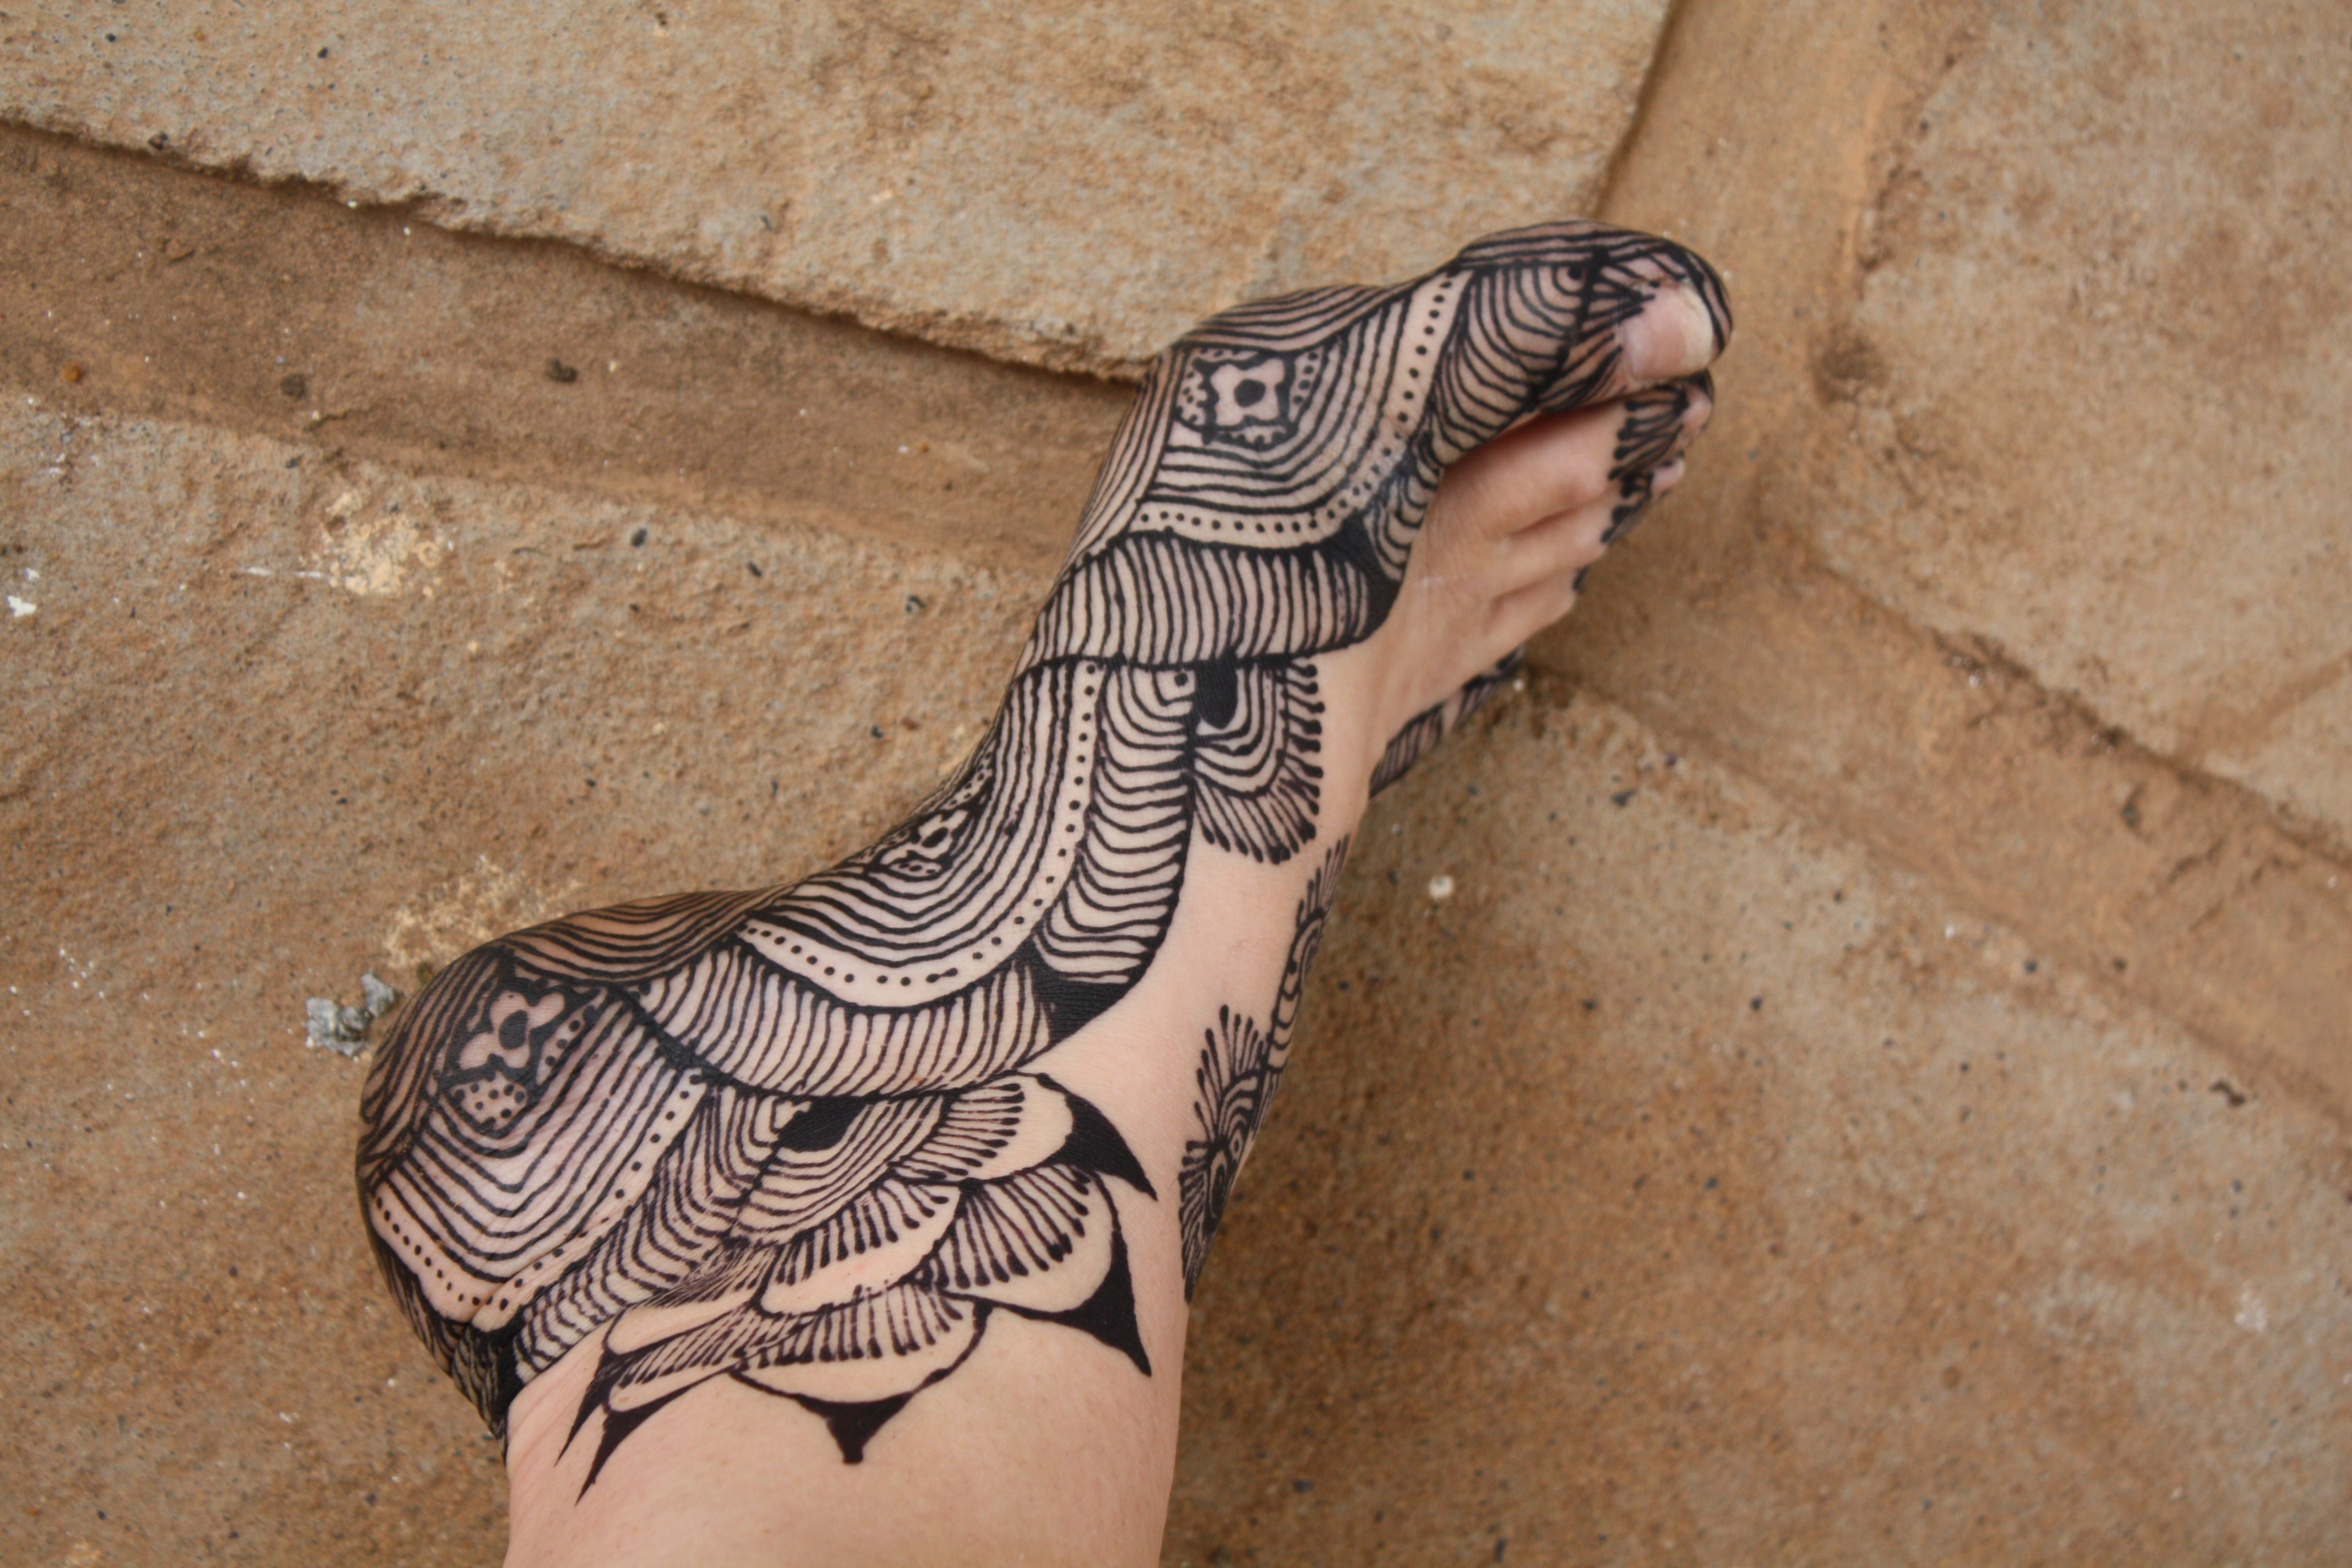 ornamental black henna tattoo, on the sole and ankle of a leg, resting on the ground, temporary henna tattoos